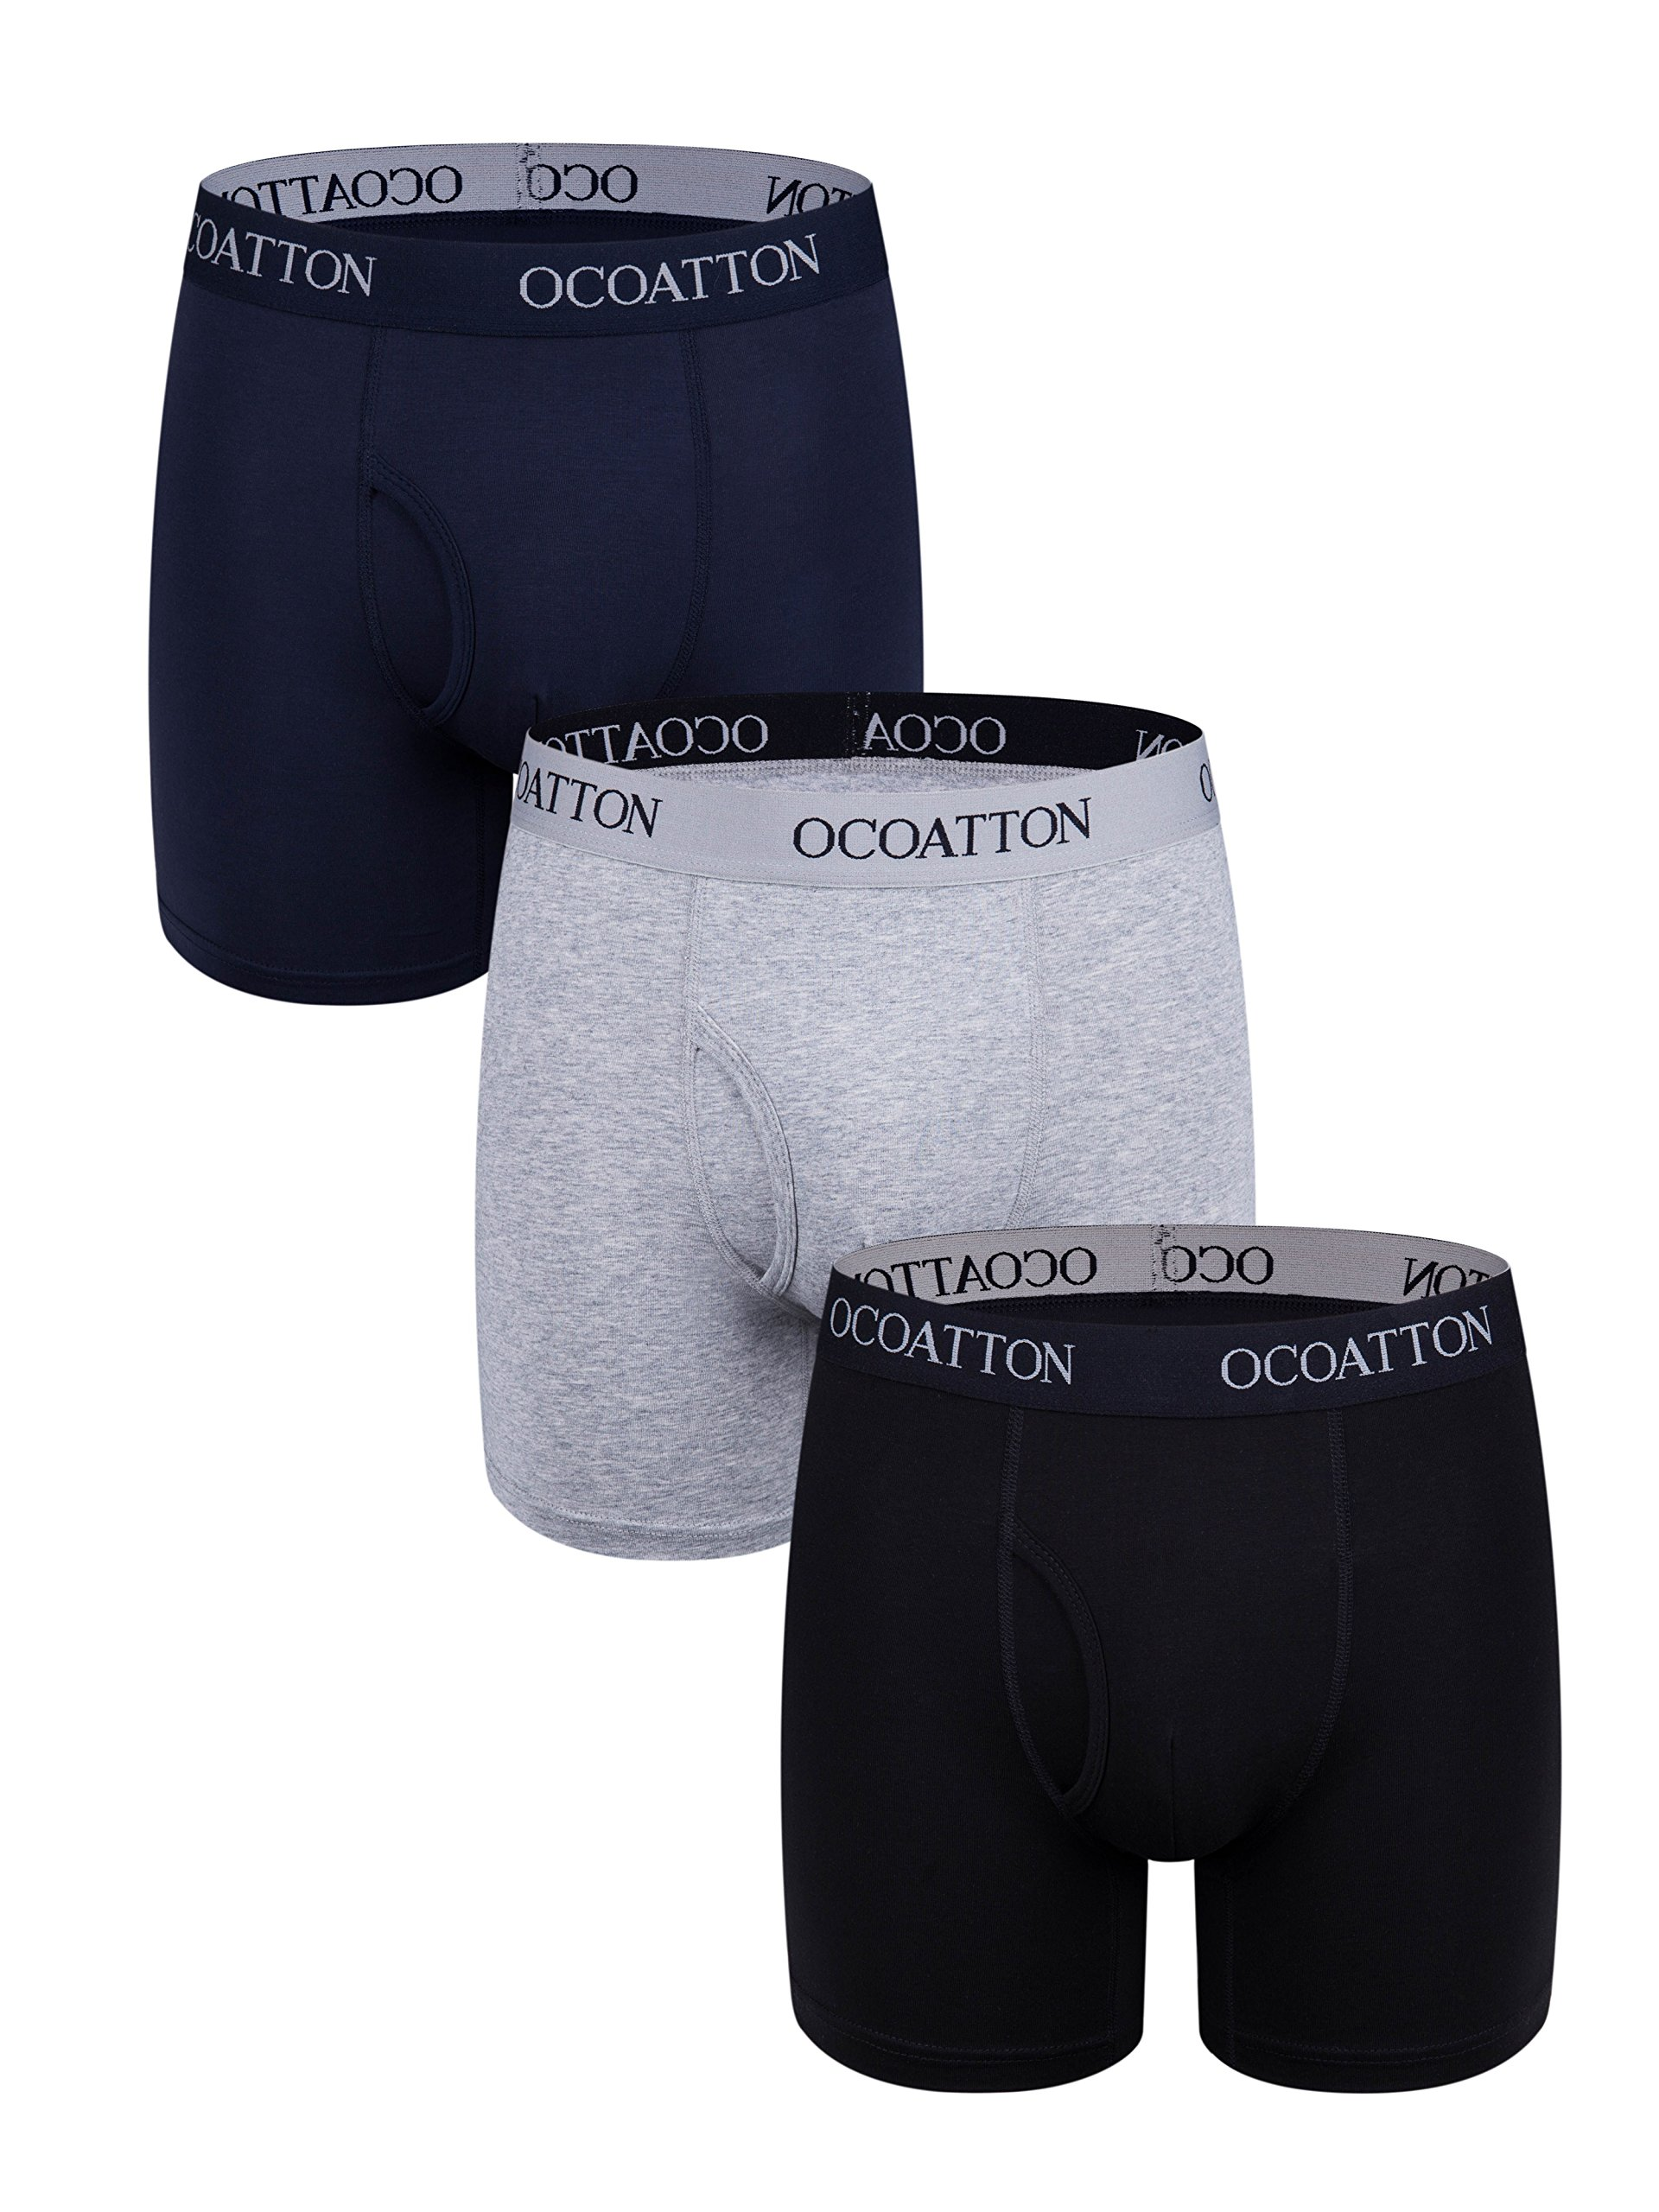 Ocoatton Men\'s Underwear Briefs 3-Pack Breathable Cotton Boxer Briefs With Front Fly (S+ / 30-32, Black+Blue+Gray)